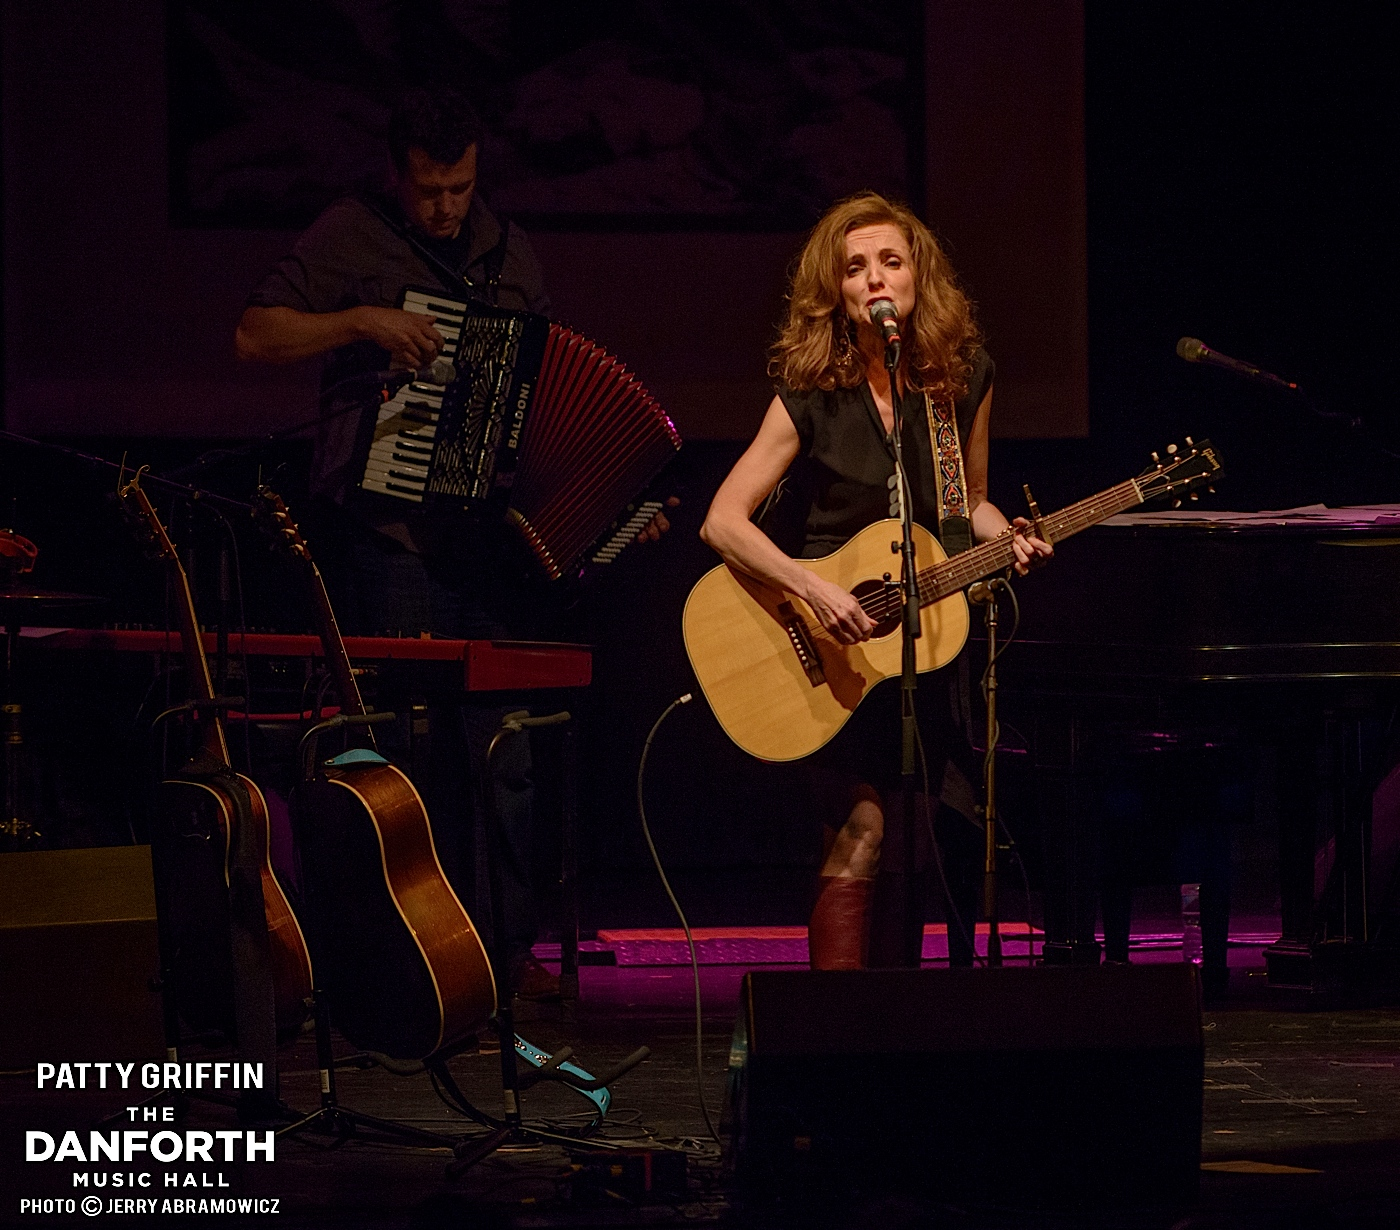 20130611 Patty Griffin performs at The Danforth Music Hall Toronto 0290